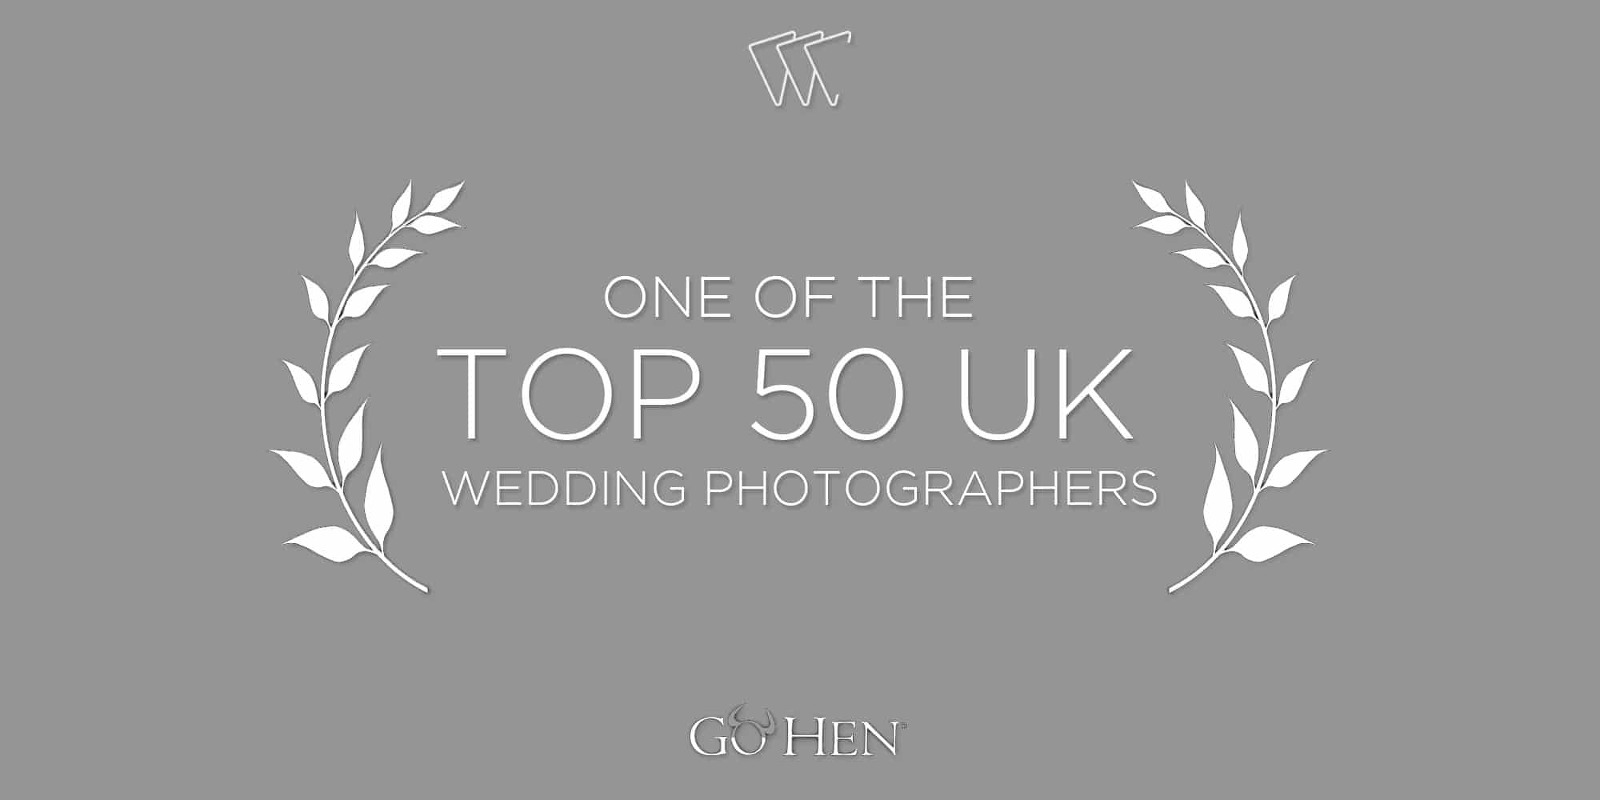 Murray Clarke is one of the 's Top 50 Wedding Photographers.